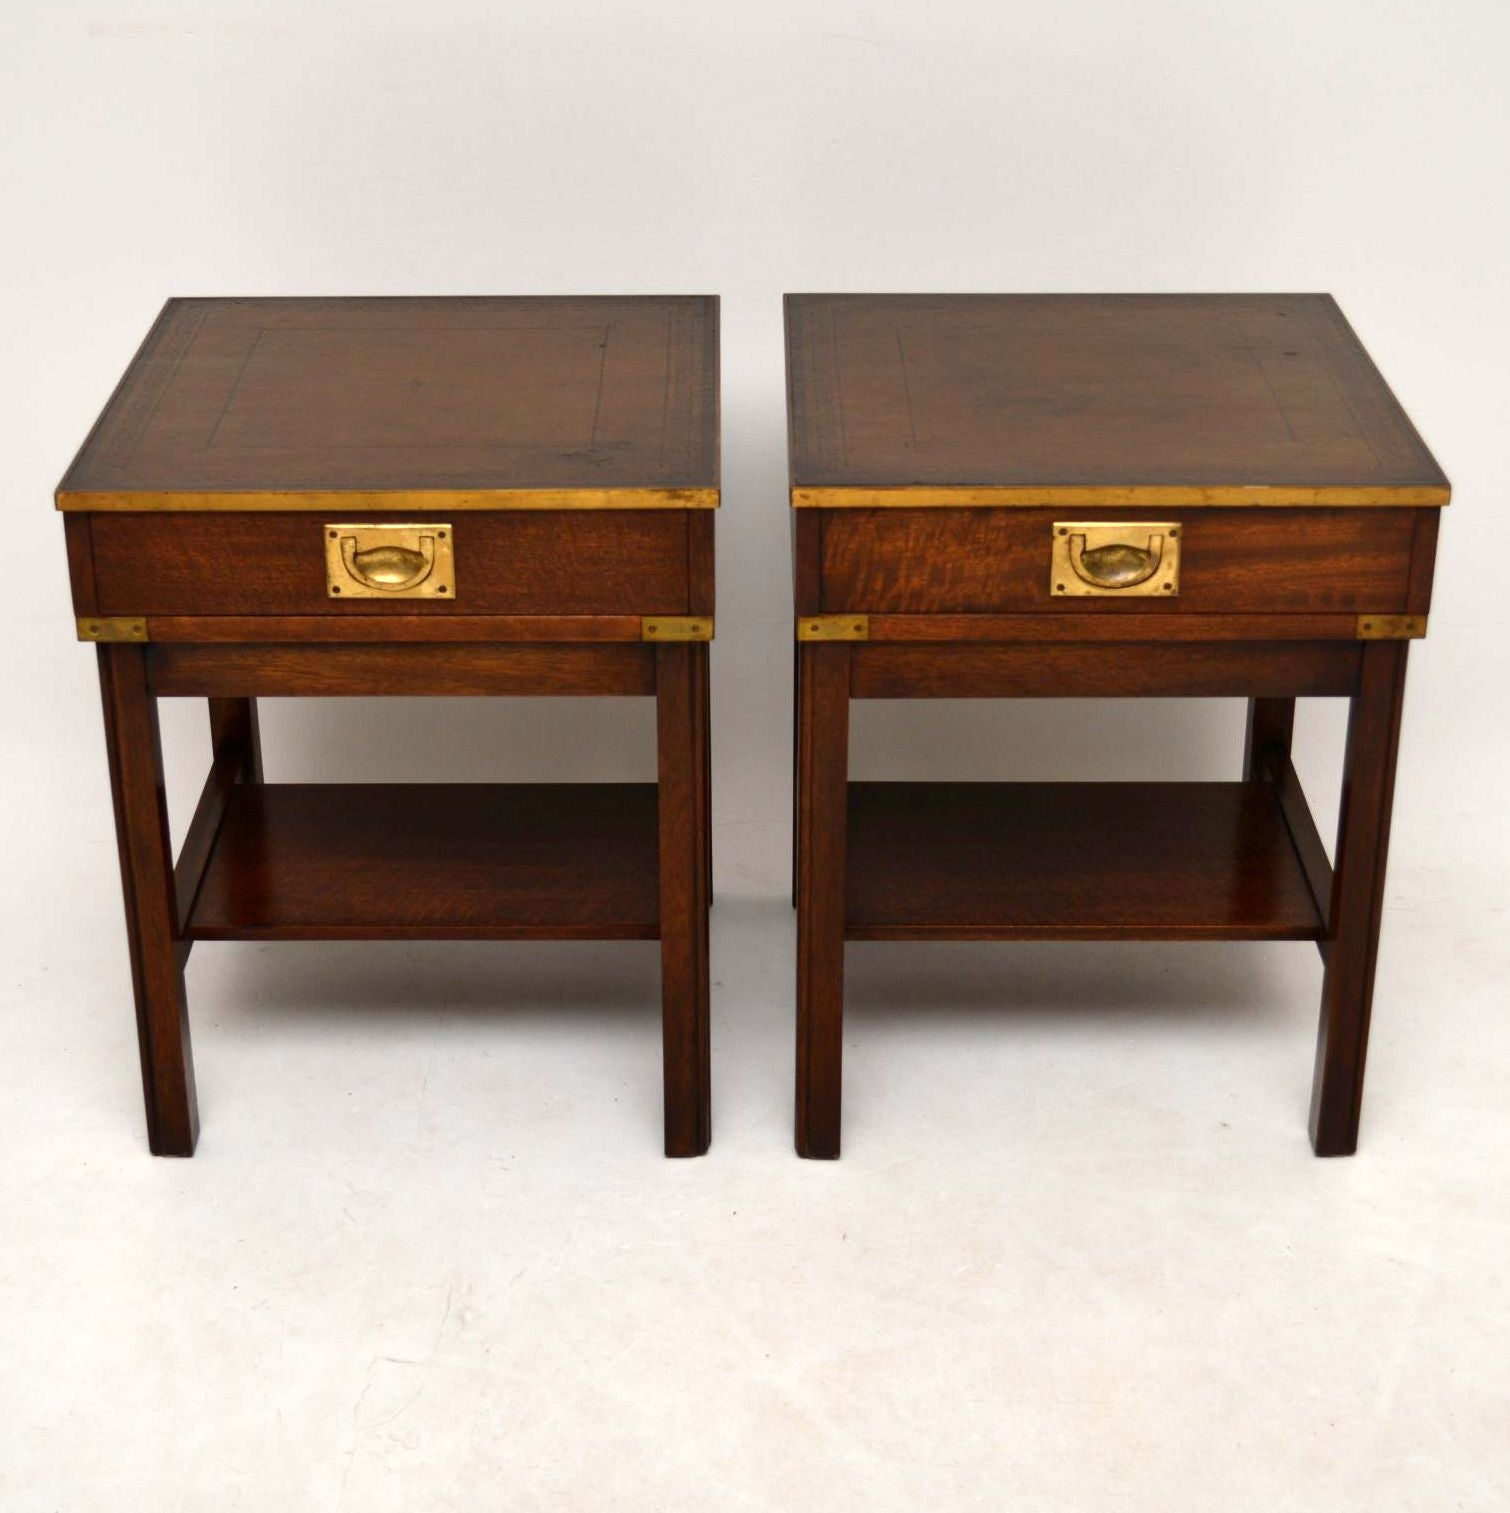 Ordinaire Pair Of Antique Campaign Style Mahogany Side Tables At 1stdibs